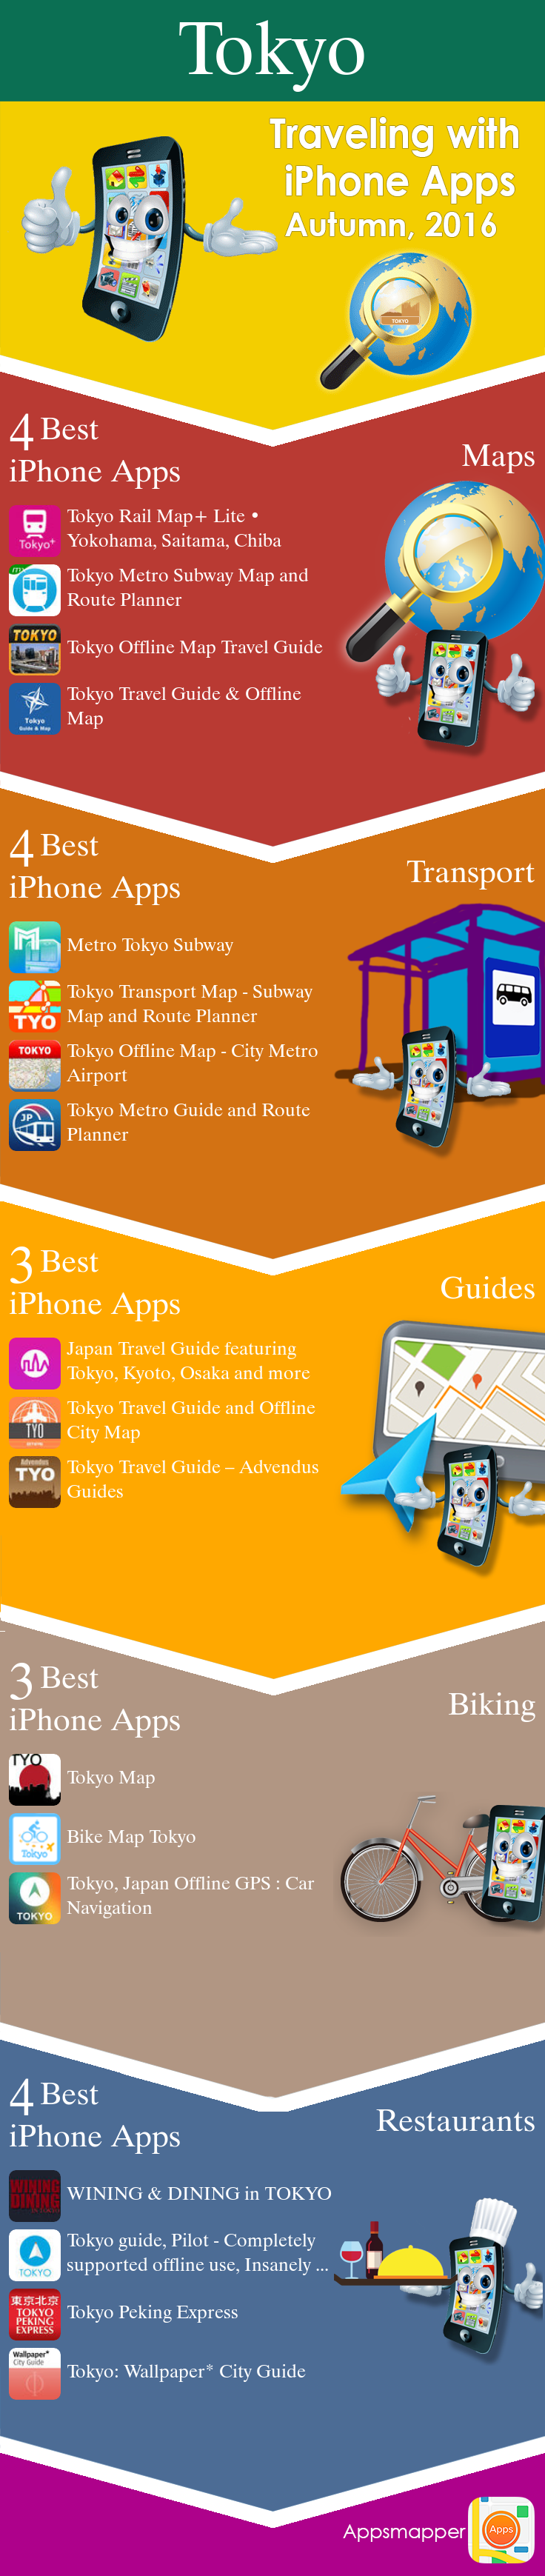 Tokyo iPhone apps Travel Guides, Maps, Transportation